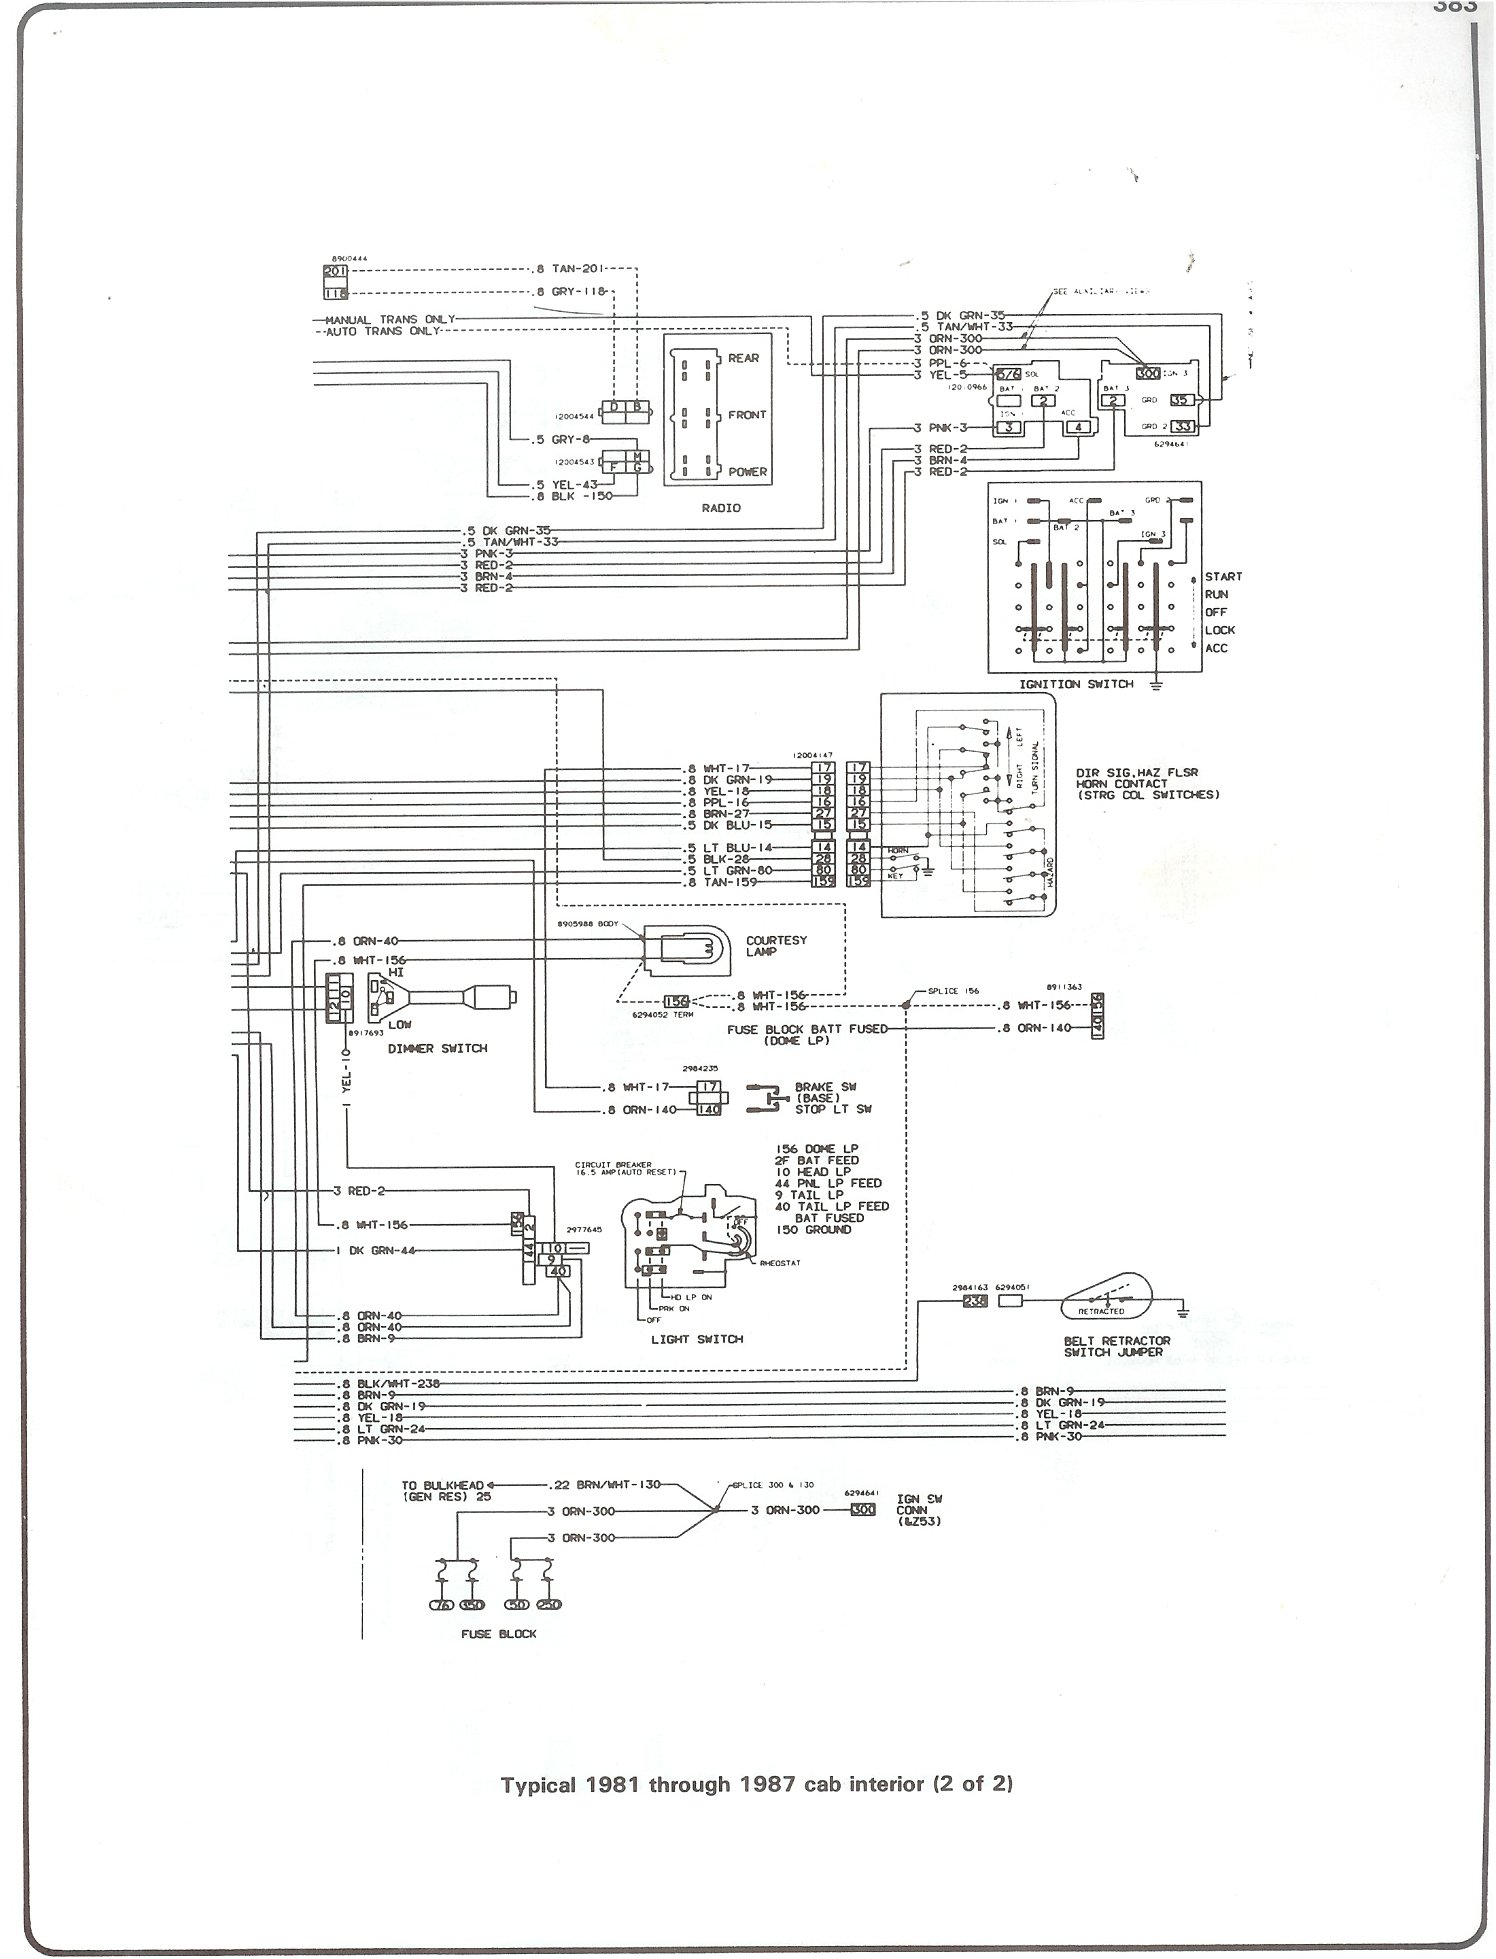 81 87_cab_inter_pg2 complete 73 87 wiring diagrams 1978 chevy truck wiring diagram at reclaimingppi.co